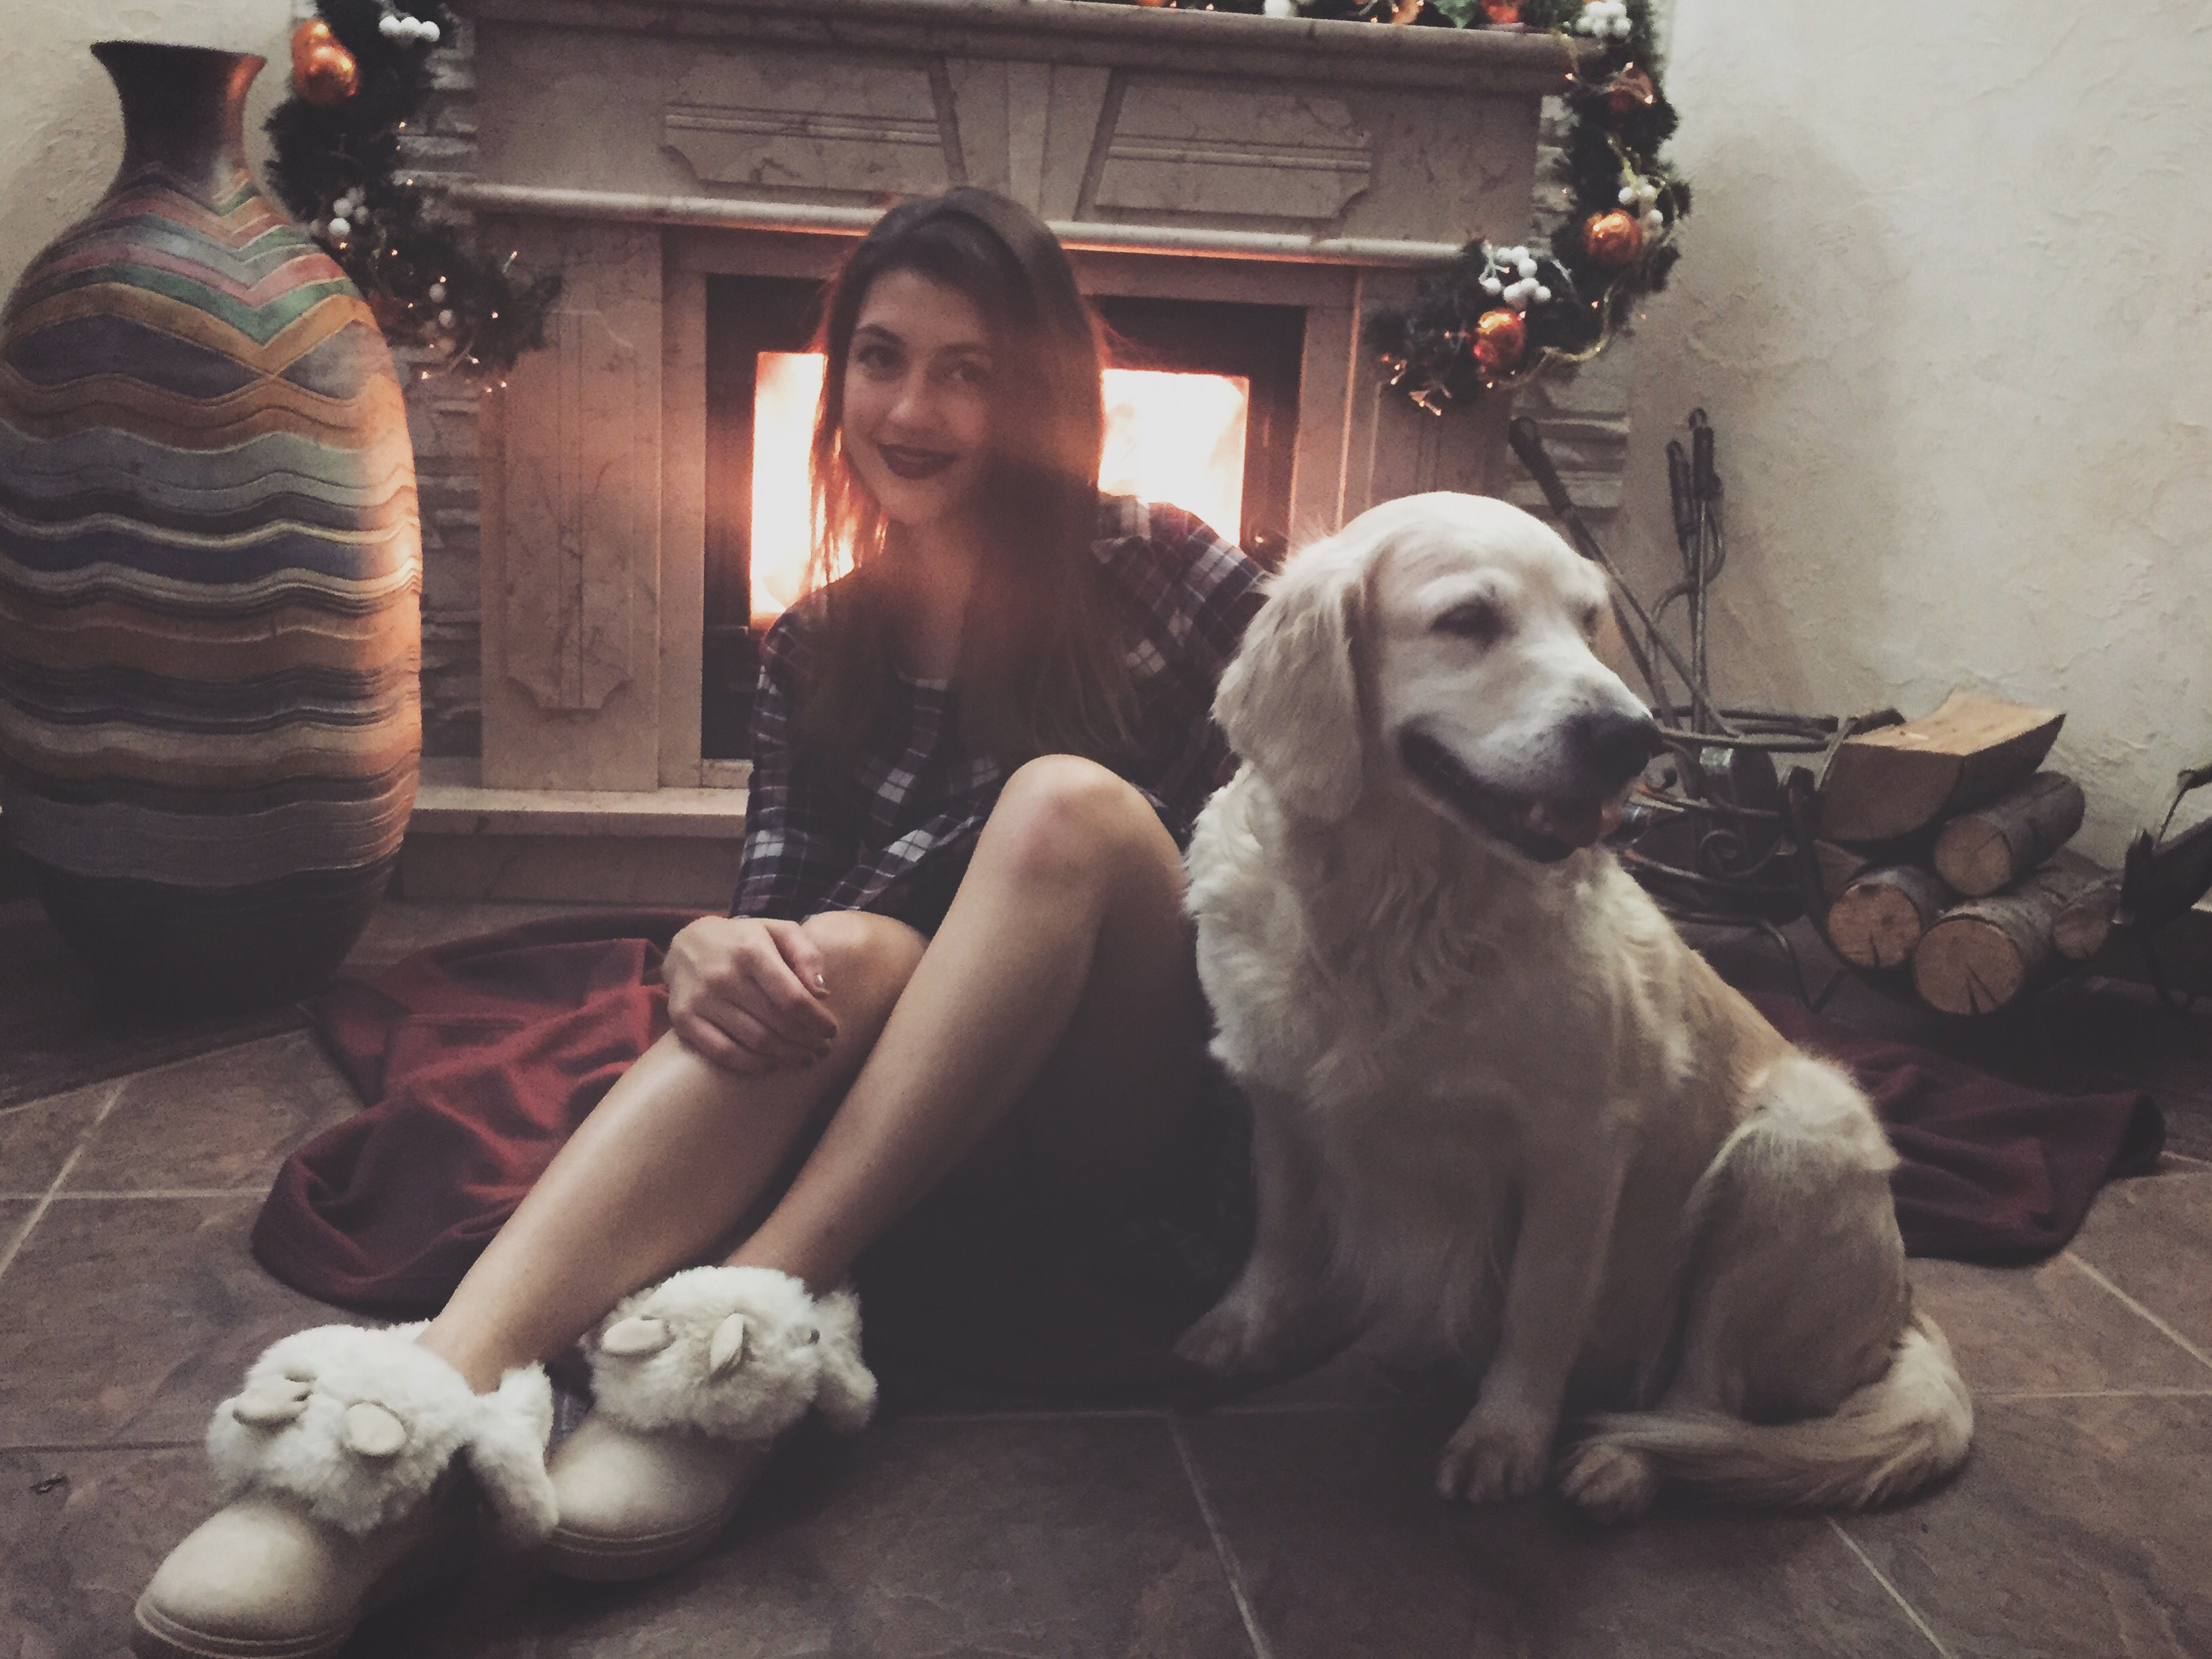 CAPAStudyAbroad_Sydney_Fall2017_From Hanna Okhrimchuk - At Home with Her Dog.jpg